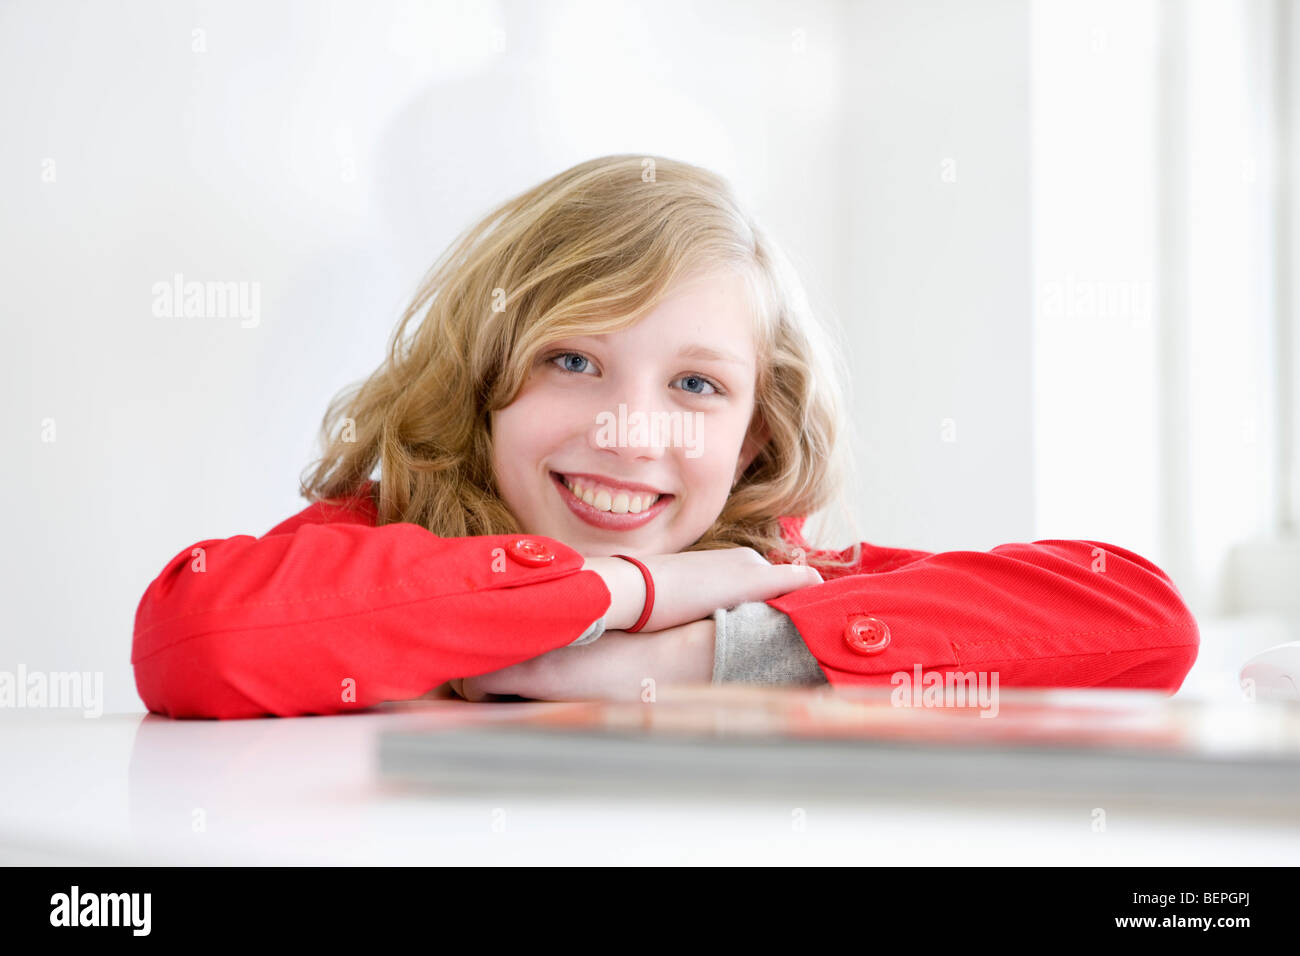 Portrait of an younger smiling woman - Stock Image